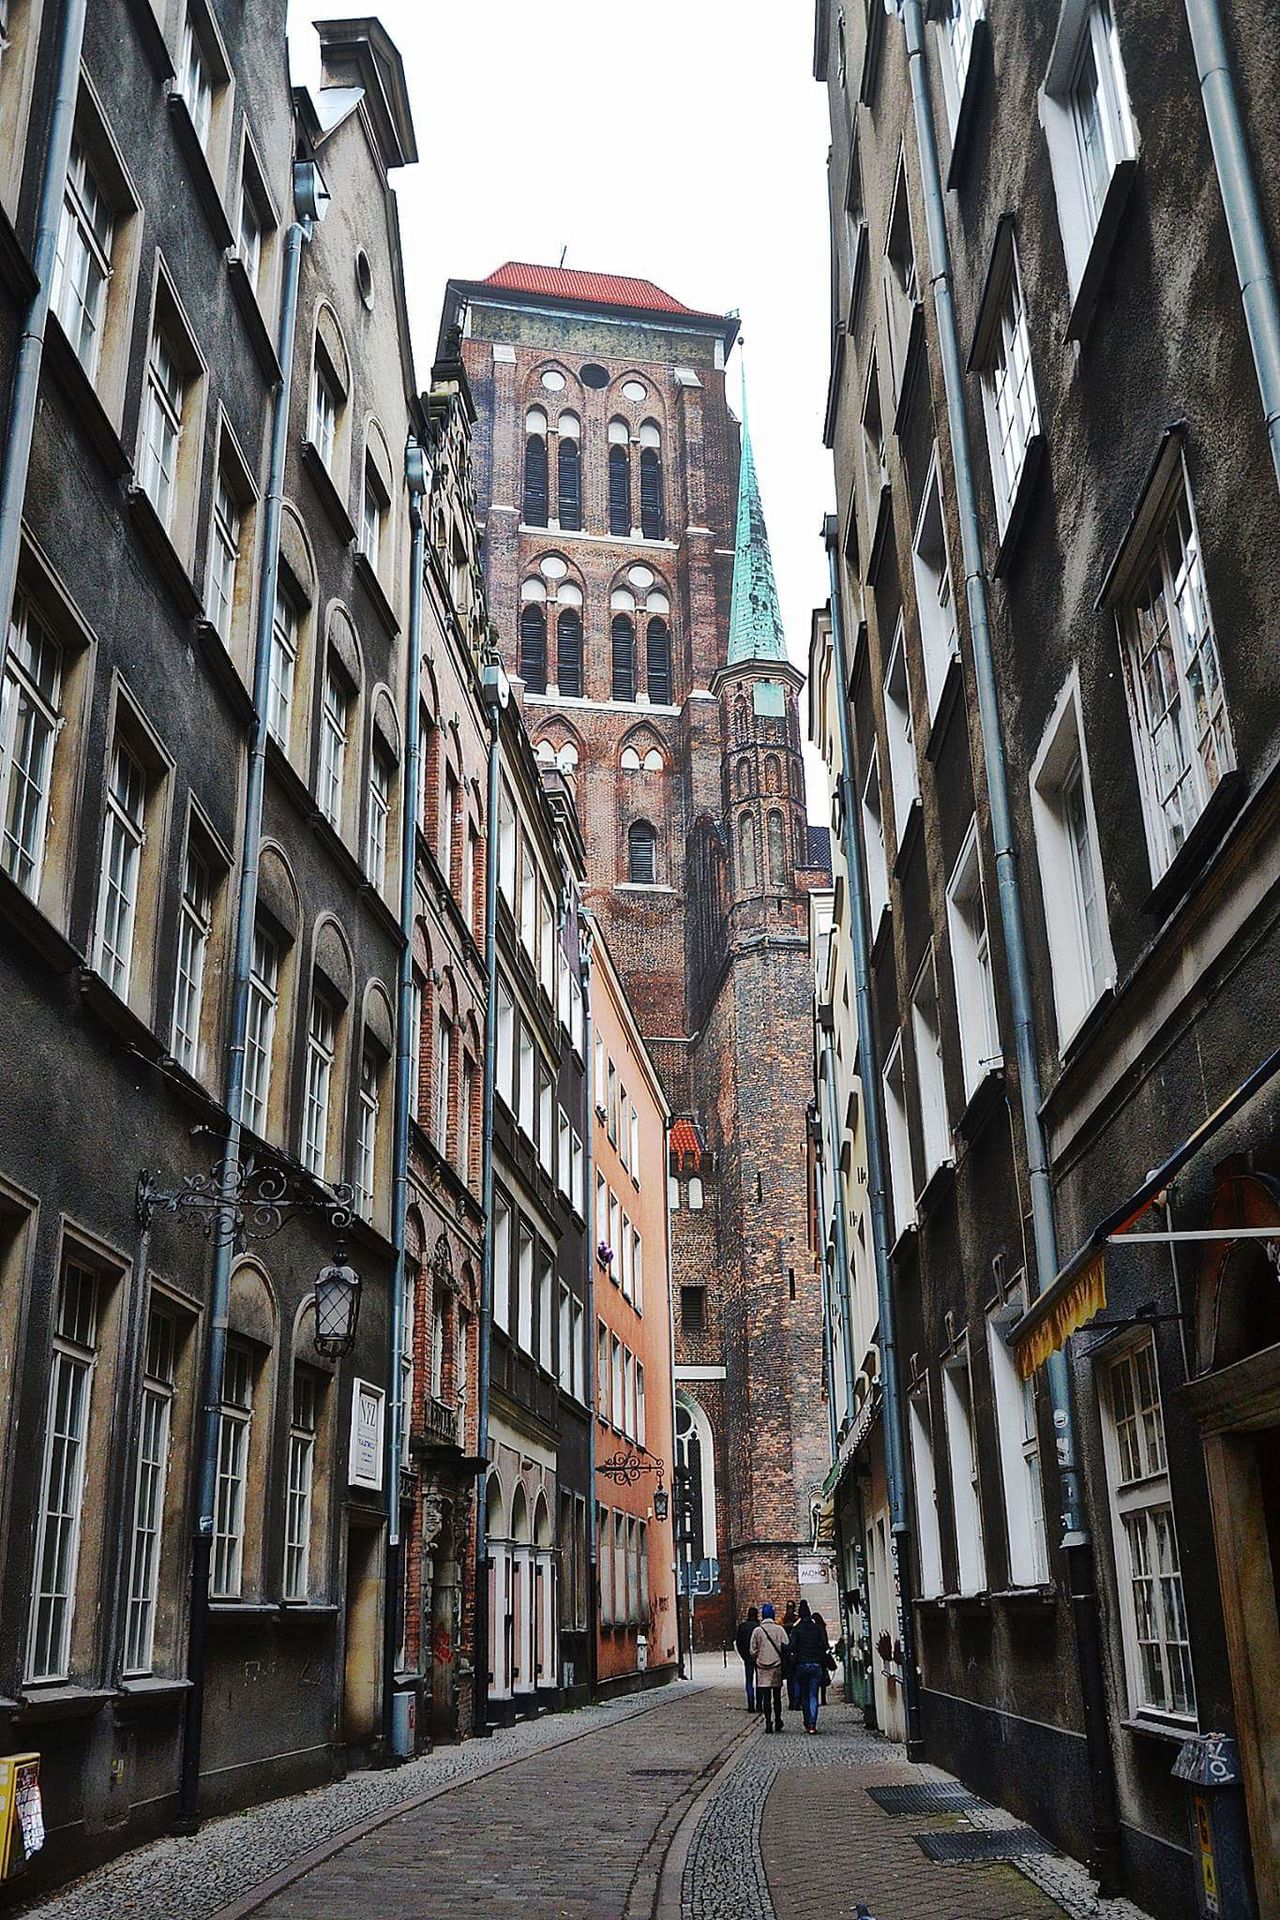 Architecture Building Exterior City Street Built Structure Outdoors Travel Destinations No People Skyscraper Sky Cityscape Day Travel Cityscape Gdańskeye Gdansk (Danzig) Silhouette Gdańsk. Gdansk,poland Gdansk_official Architecture City